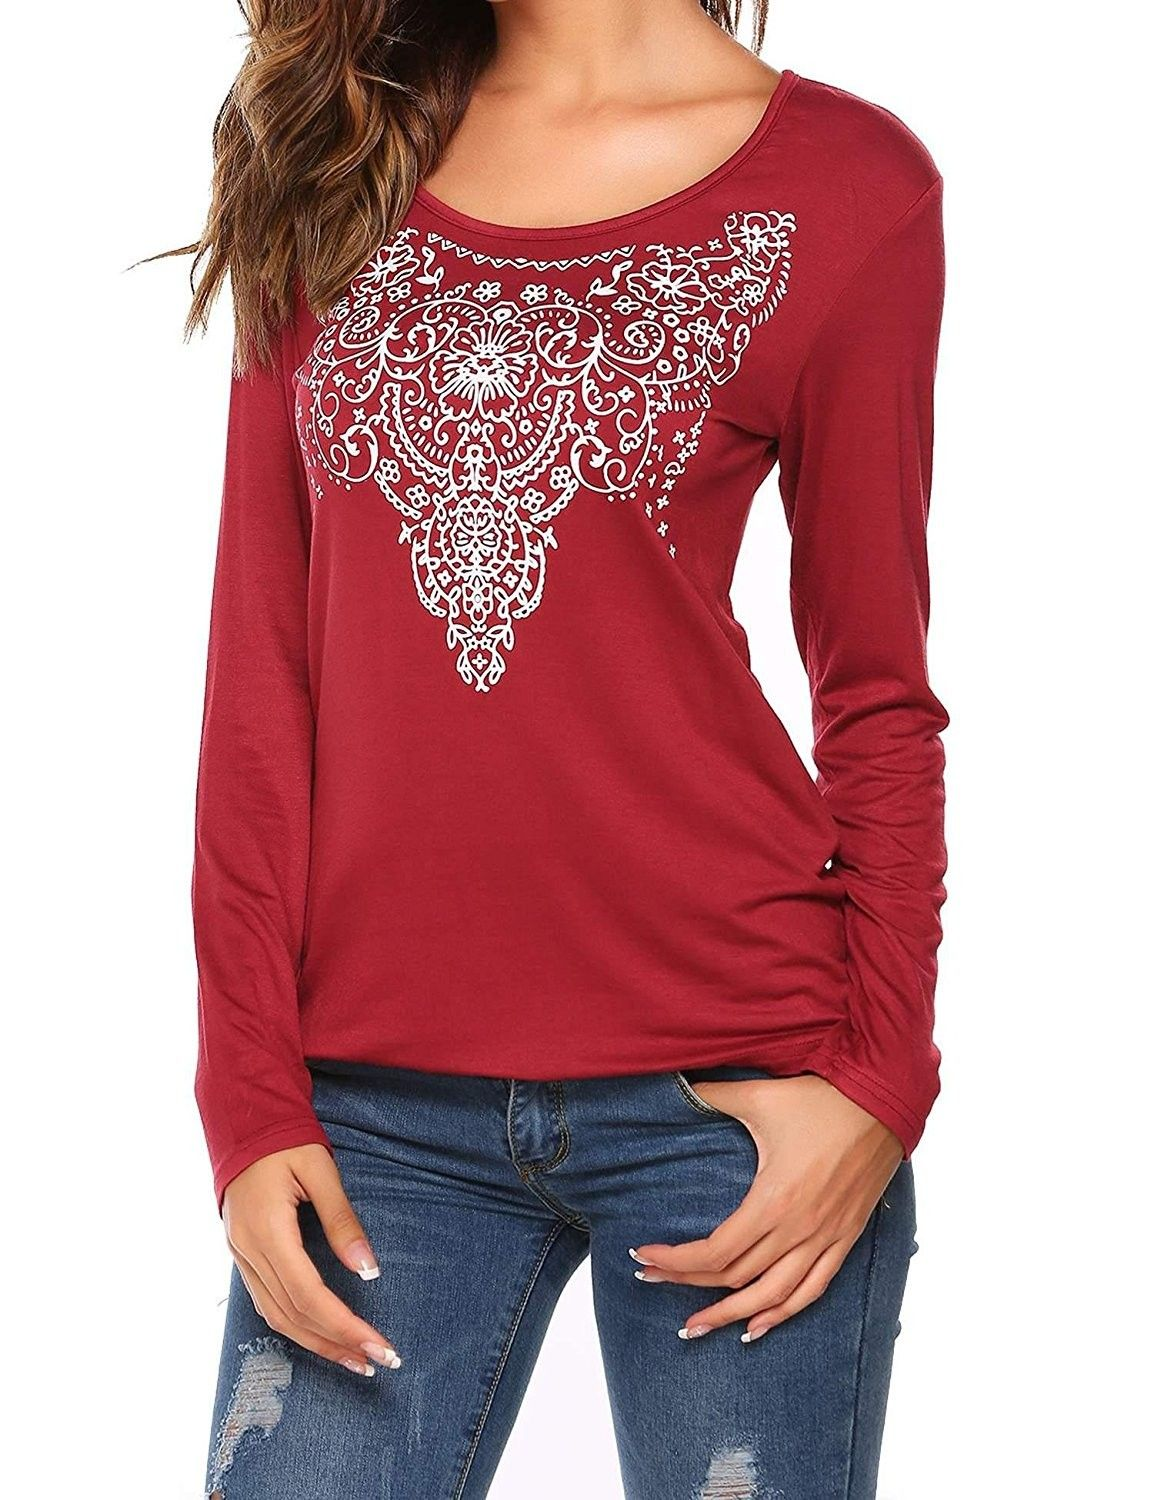 fd485055 Women's Clothing, Tops & Tees, Tanks & Camis, Women's Summer Sleeveless/Long  Sleeve Street Printed T Shirt Tank Tops Graphic Tees S-XXL - 009_wine Red  ...